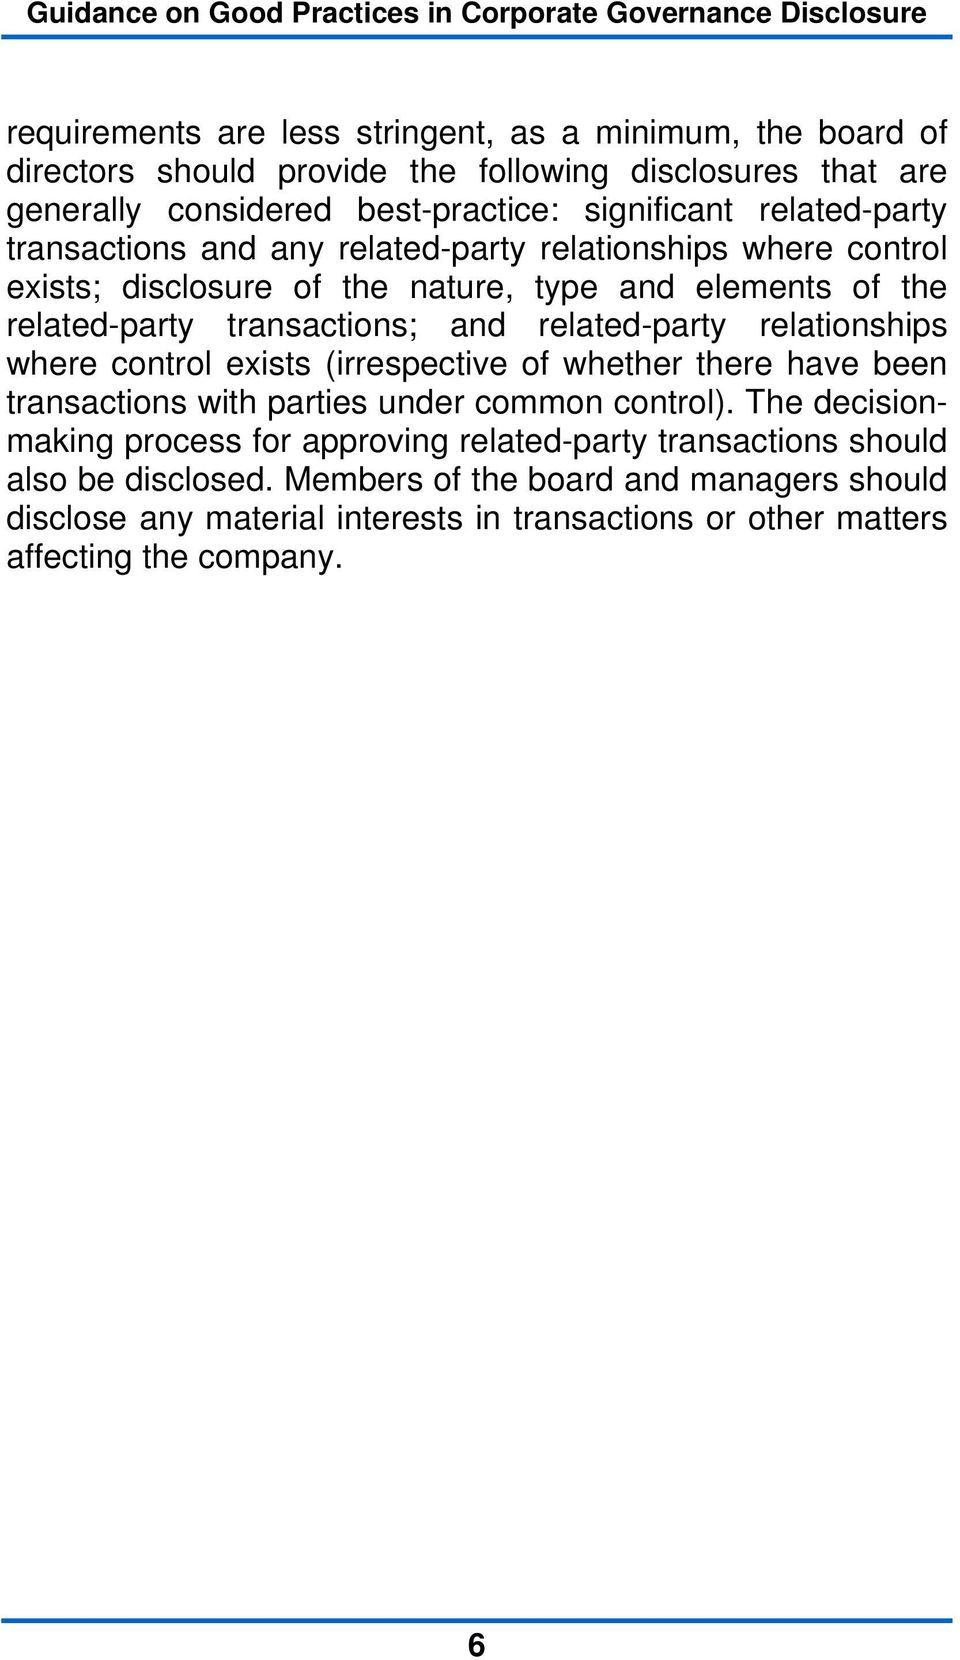 related-party transactions; and related-party relationships where control exists (irrespective of whether there have been transactions with parties under common control).